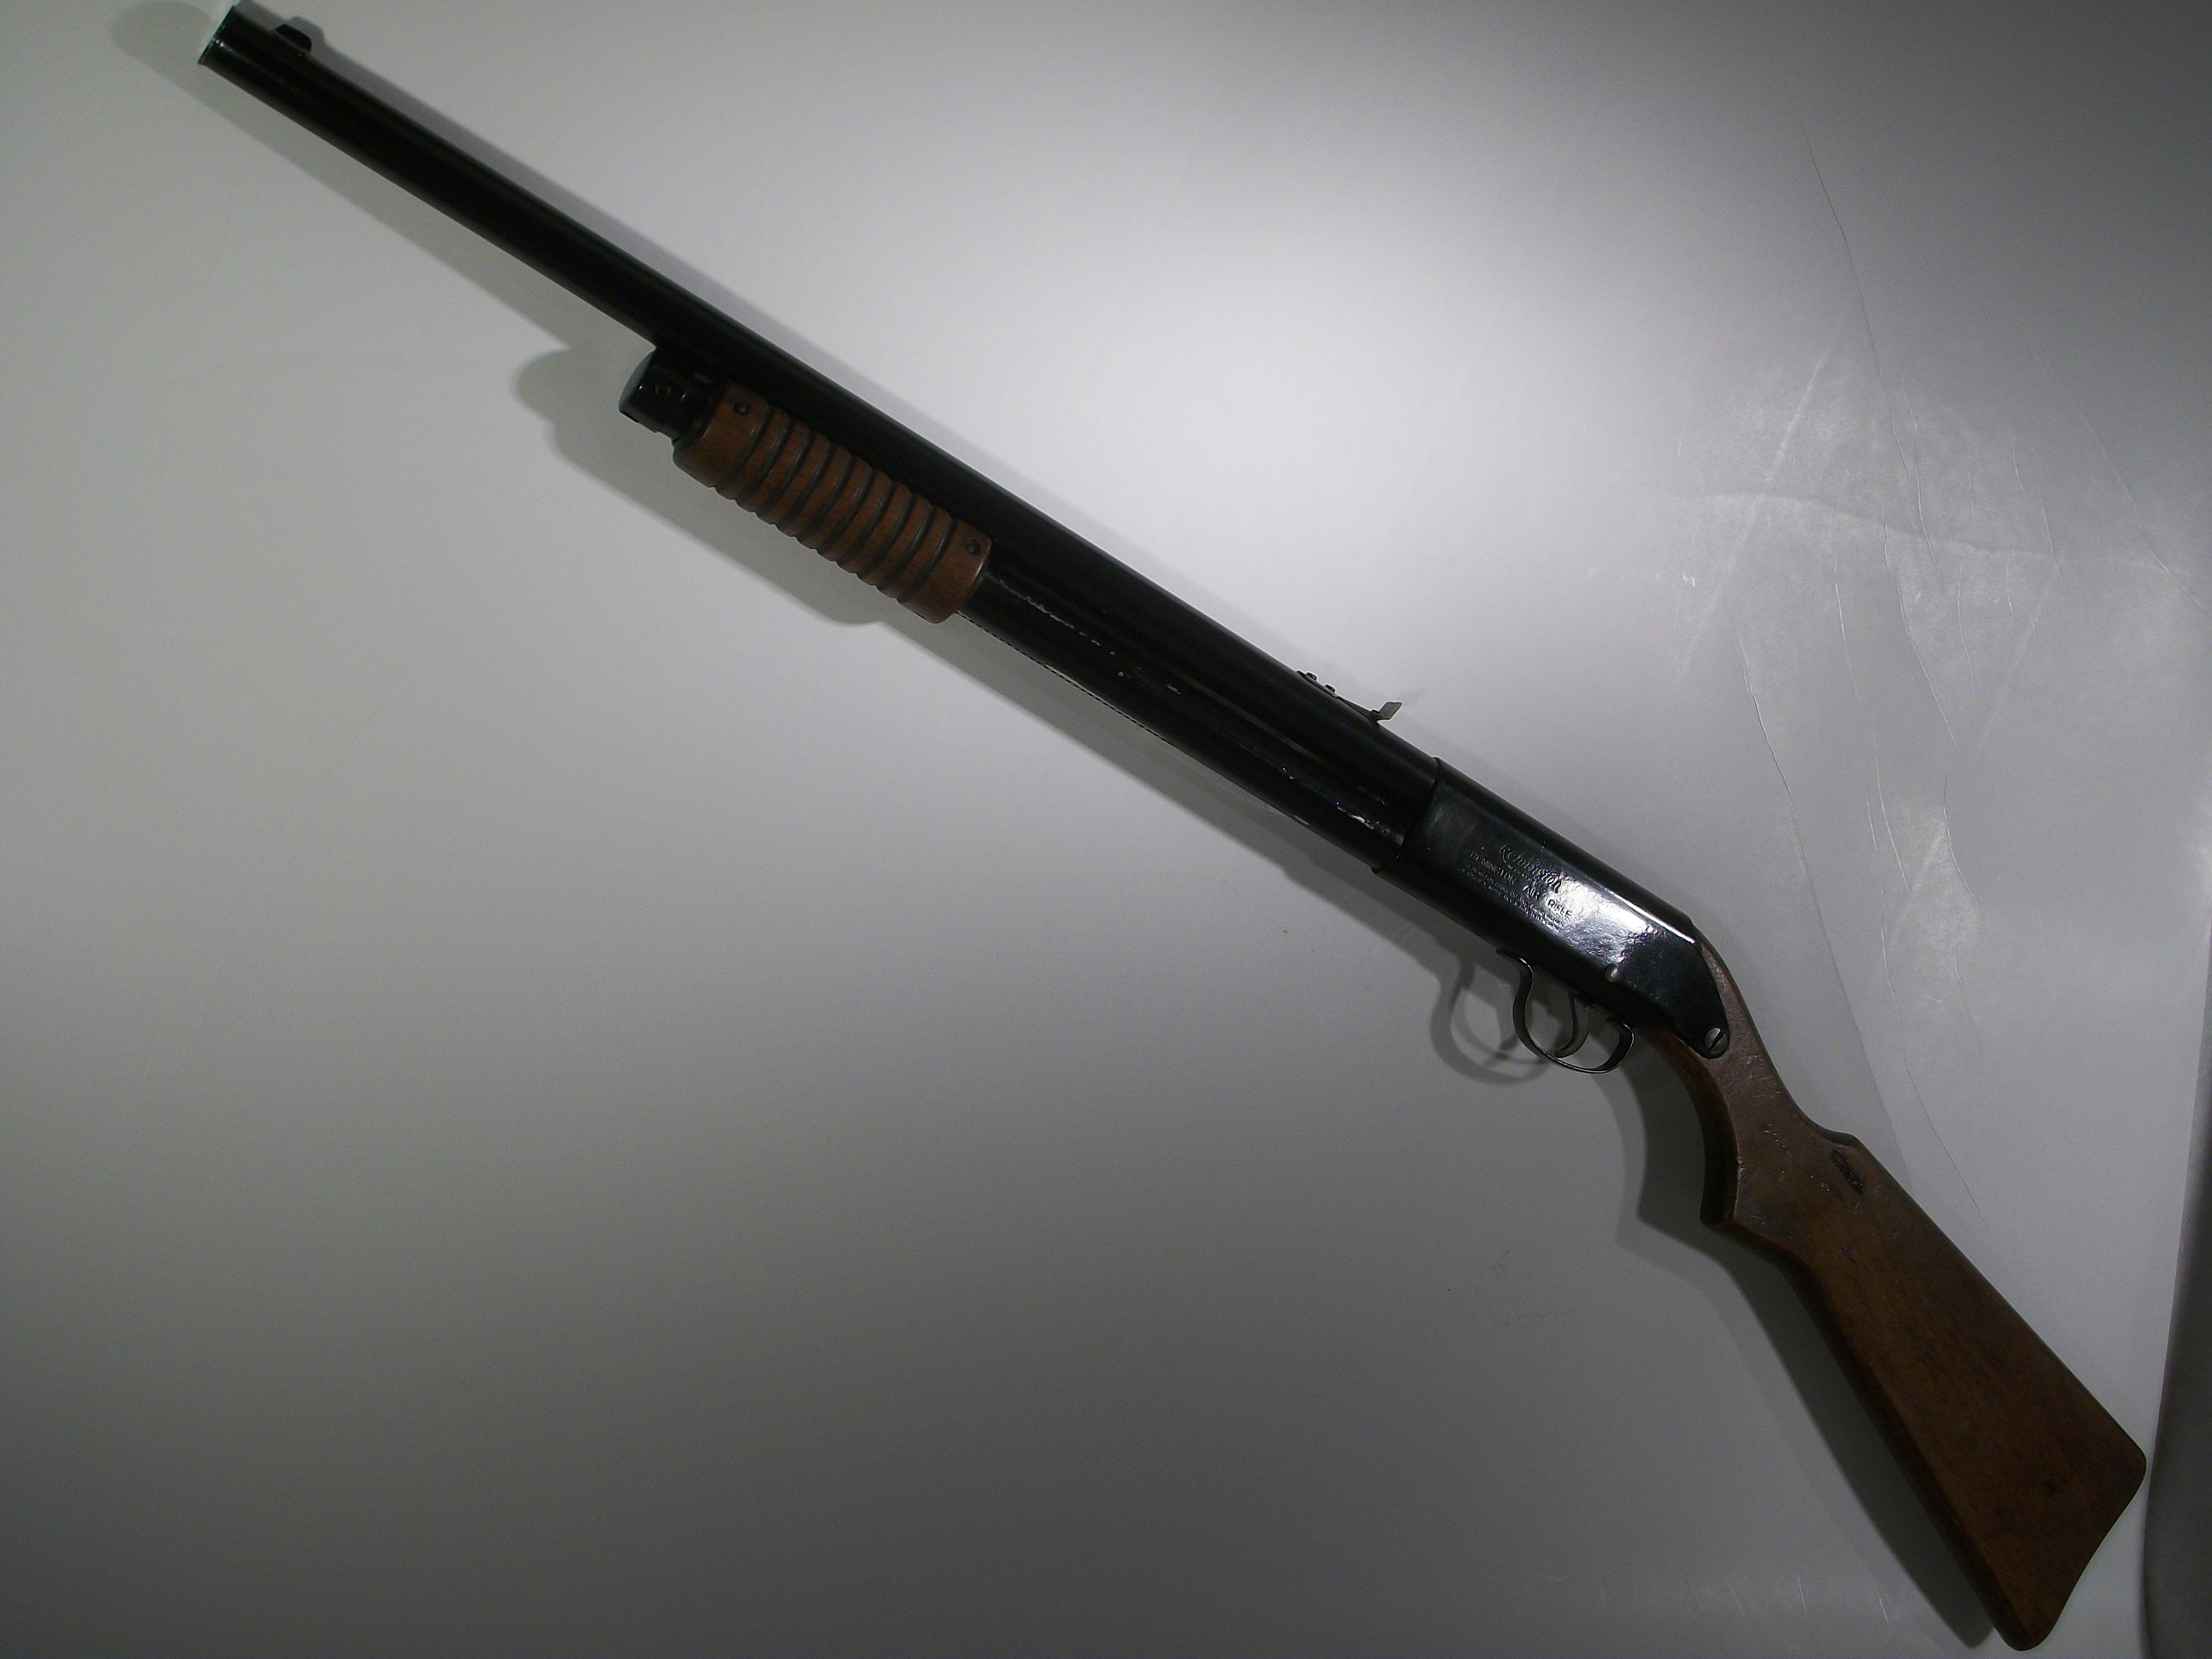 Remington Model 26 Air Rifle Painted Finish - 1928